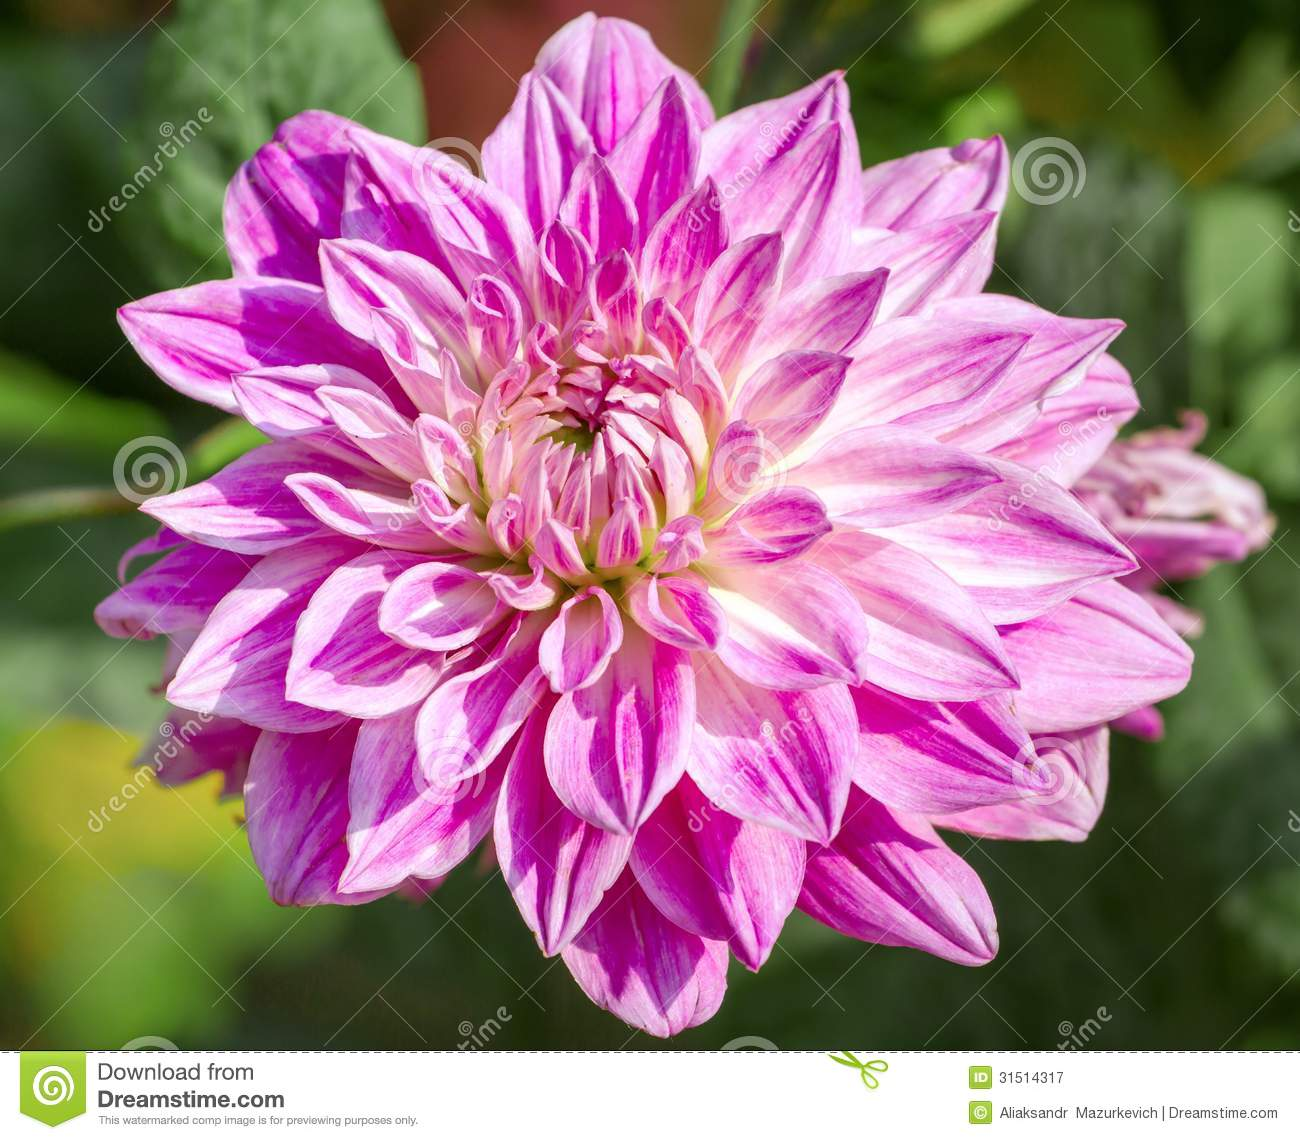 Flower Meanings by Type Name Color and Occasion  The